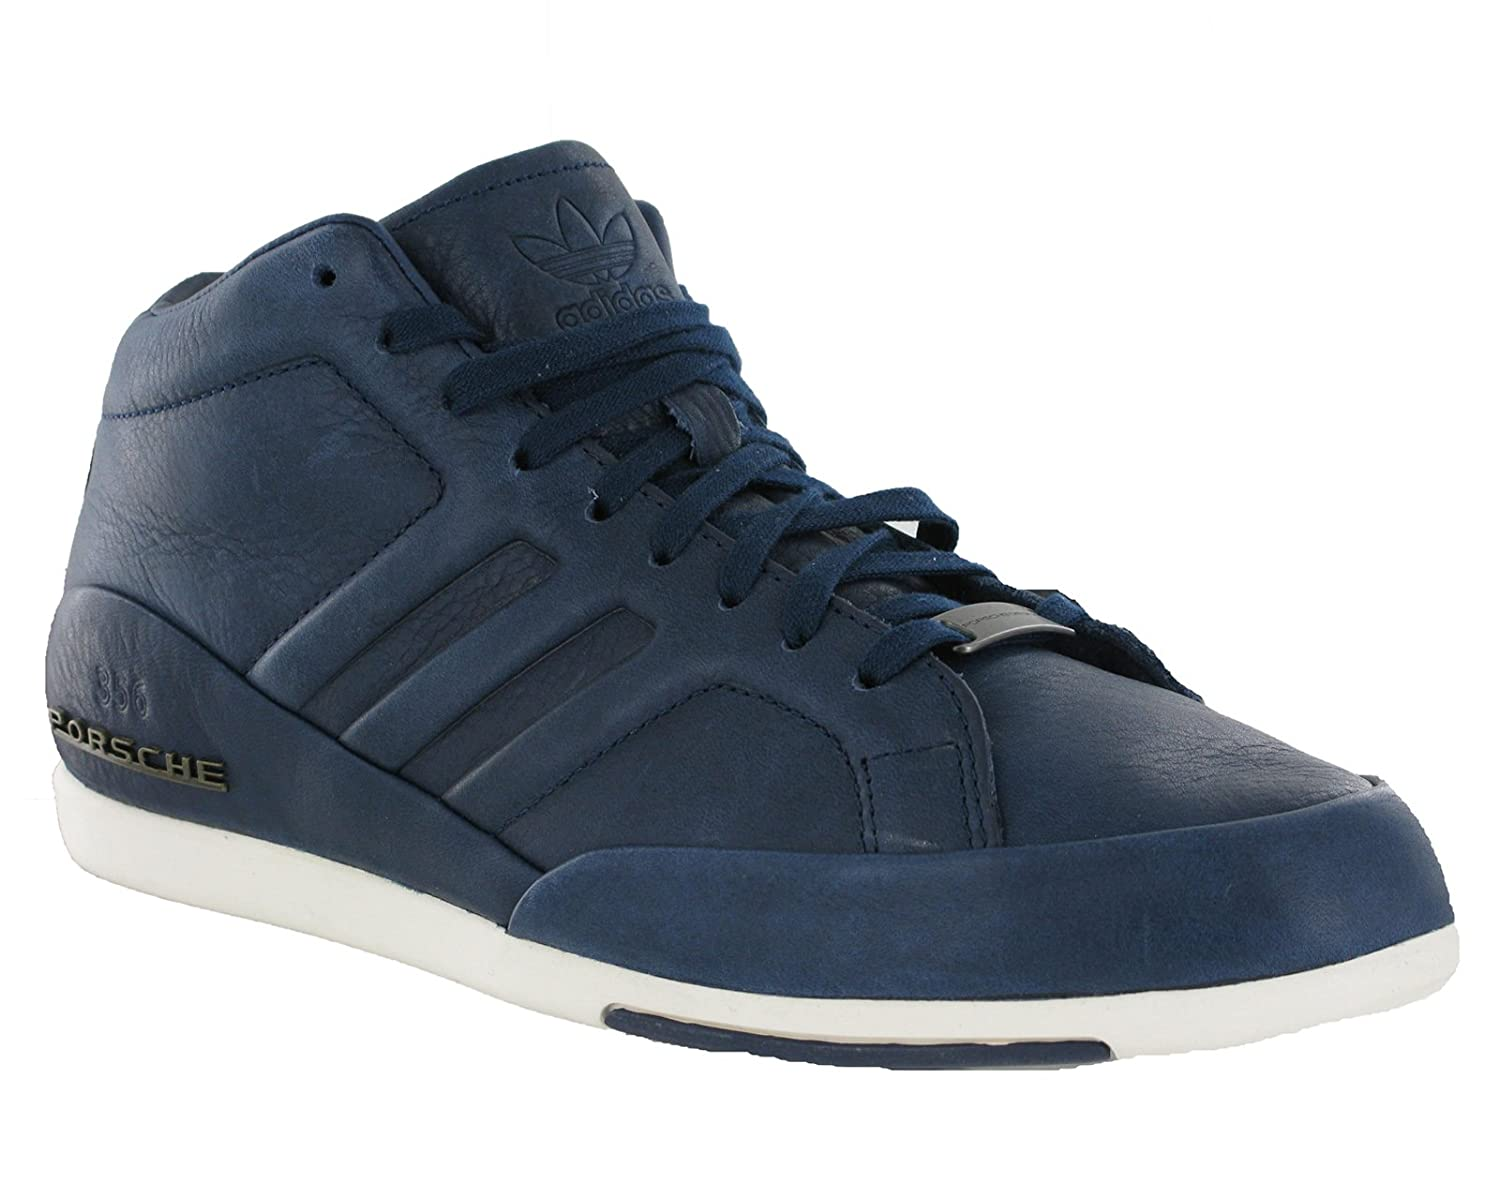 mens adidas originals porsche 356 mitte marine smart casual mode